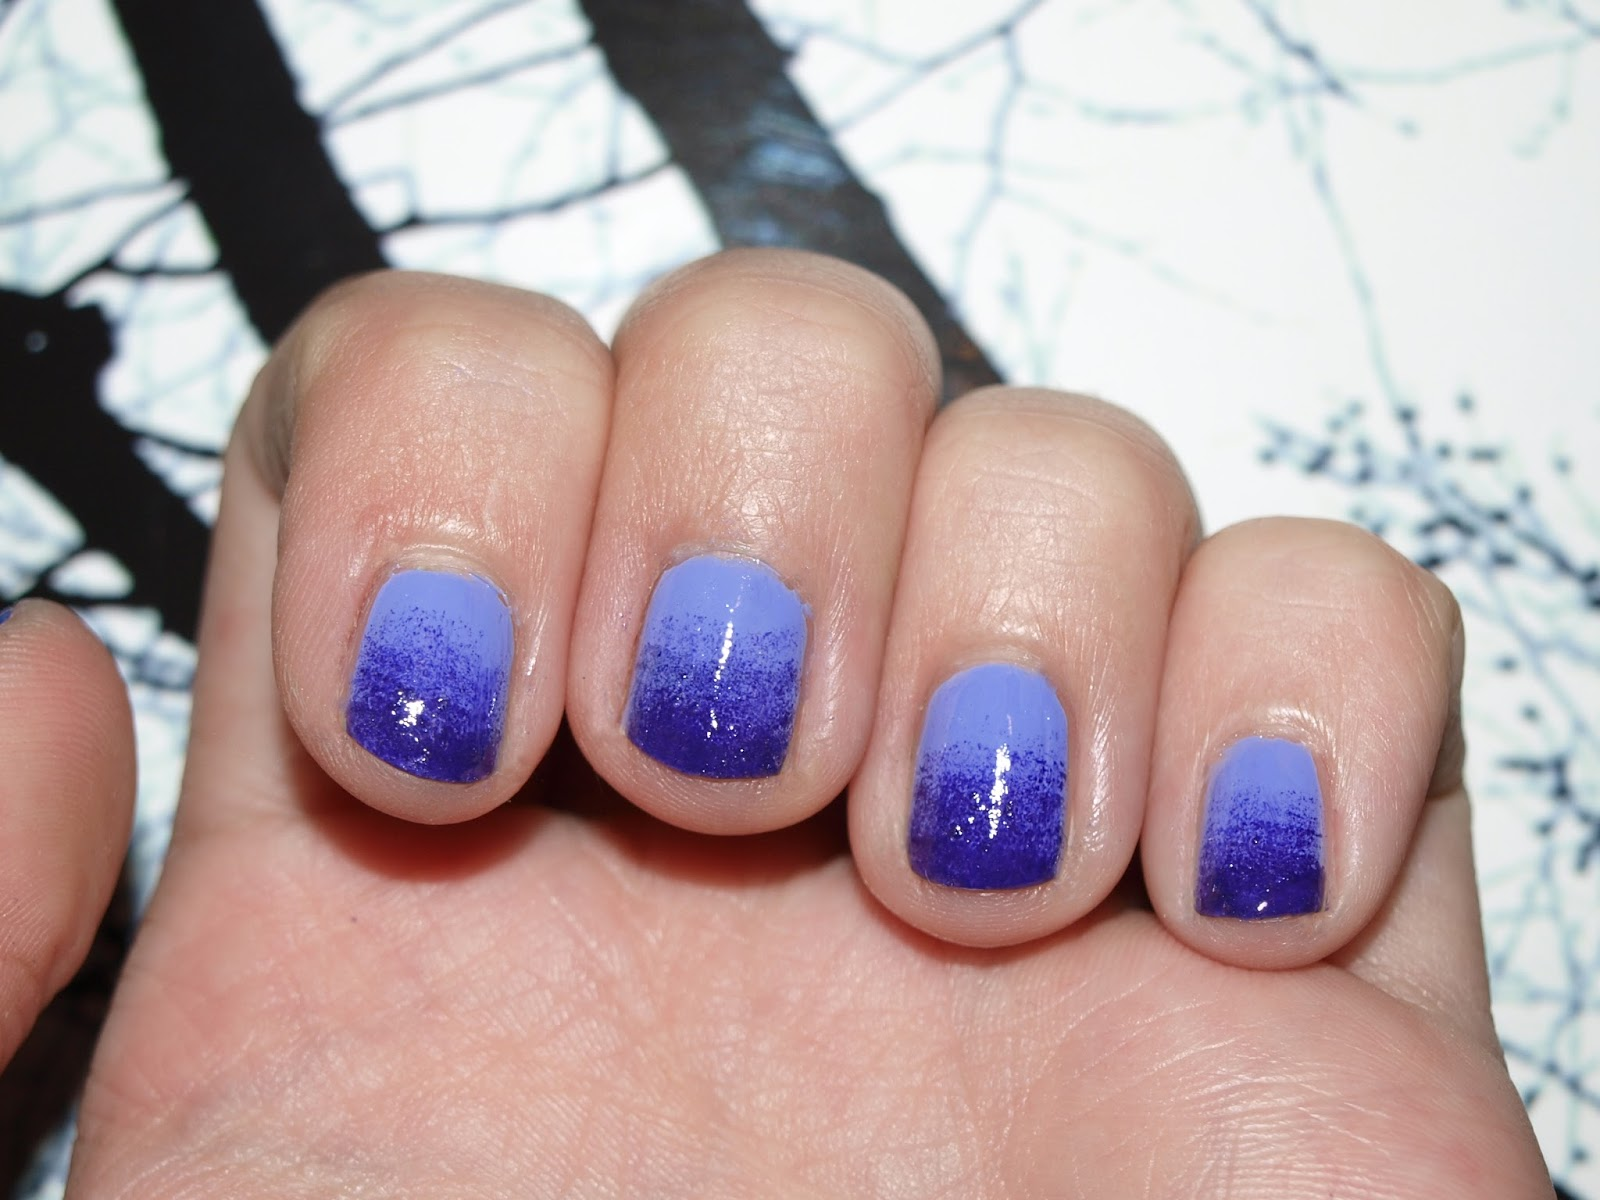 Justforfun And Withoutanysense Nageldesign #2 - Ombre Nails